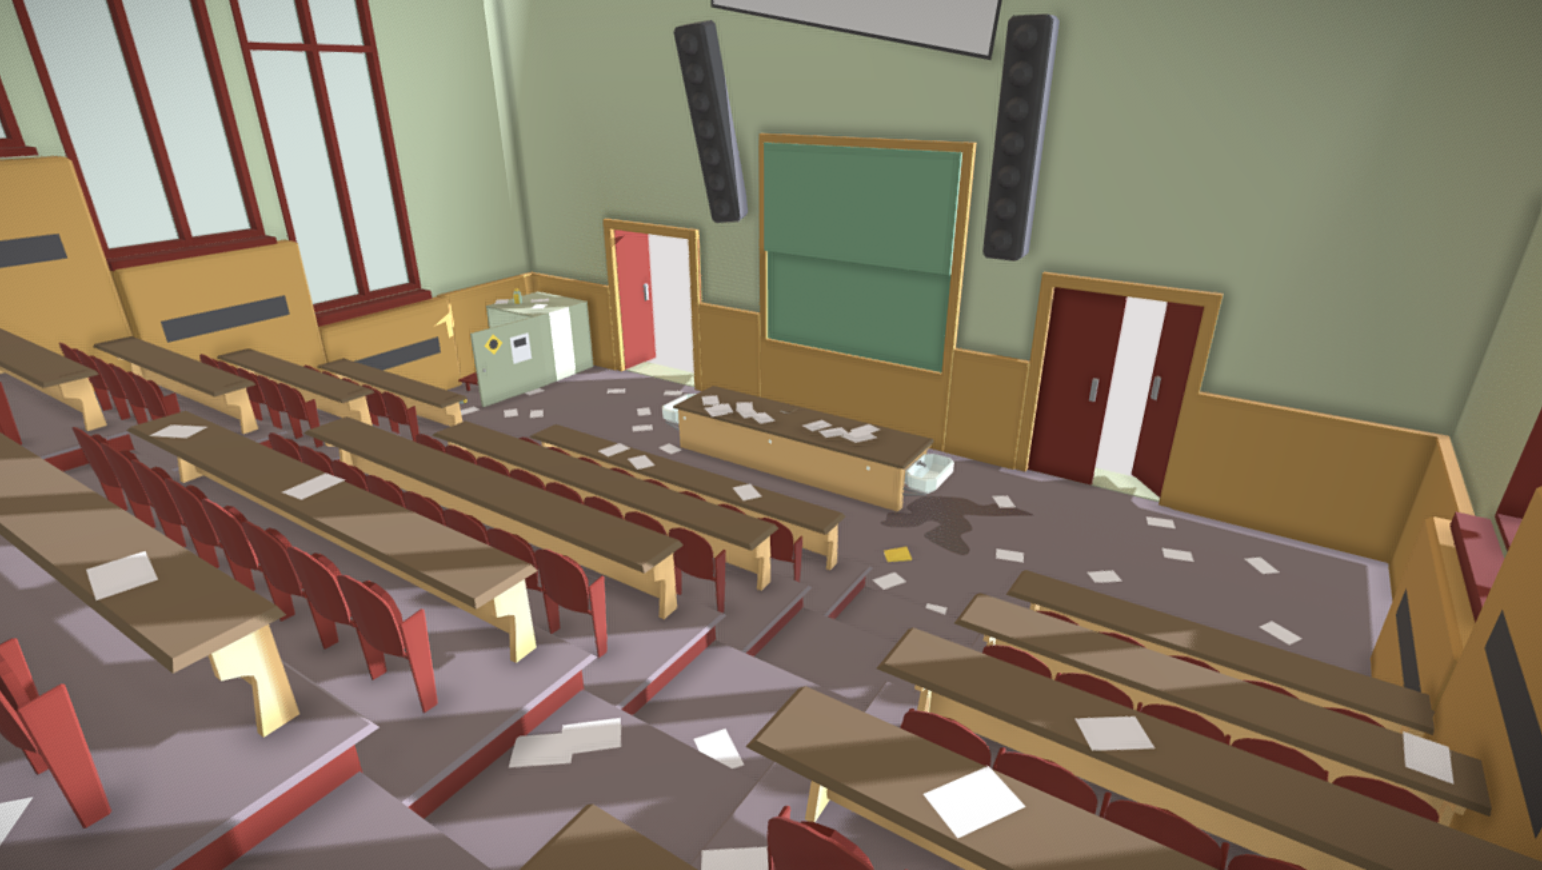 Image of 3D model of lecture theatre